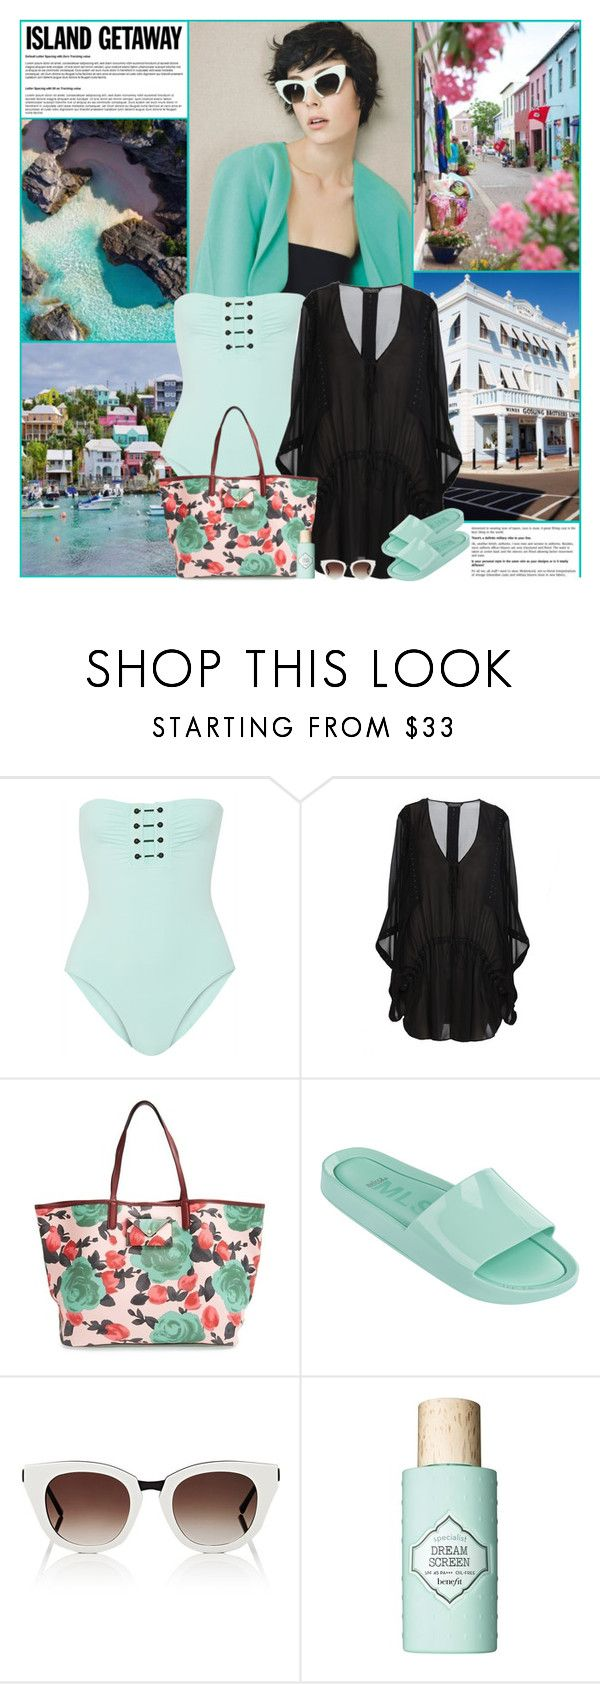 """""""Chic Island Getaway"""" by kittyfantastica ❤ liked on Polyvore featuring Proenza Schouler, AllSaints, Marc by Marc Jacobs, Melissa, Thierry Lasry and Benefit"""